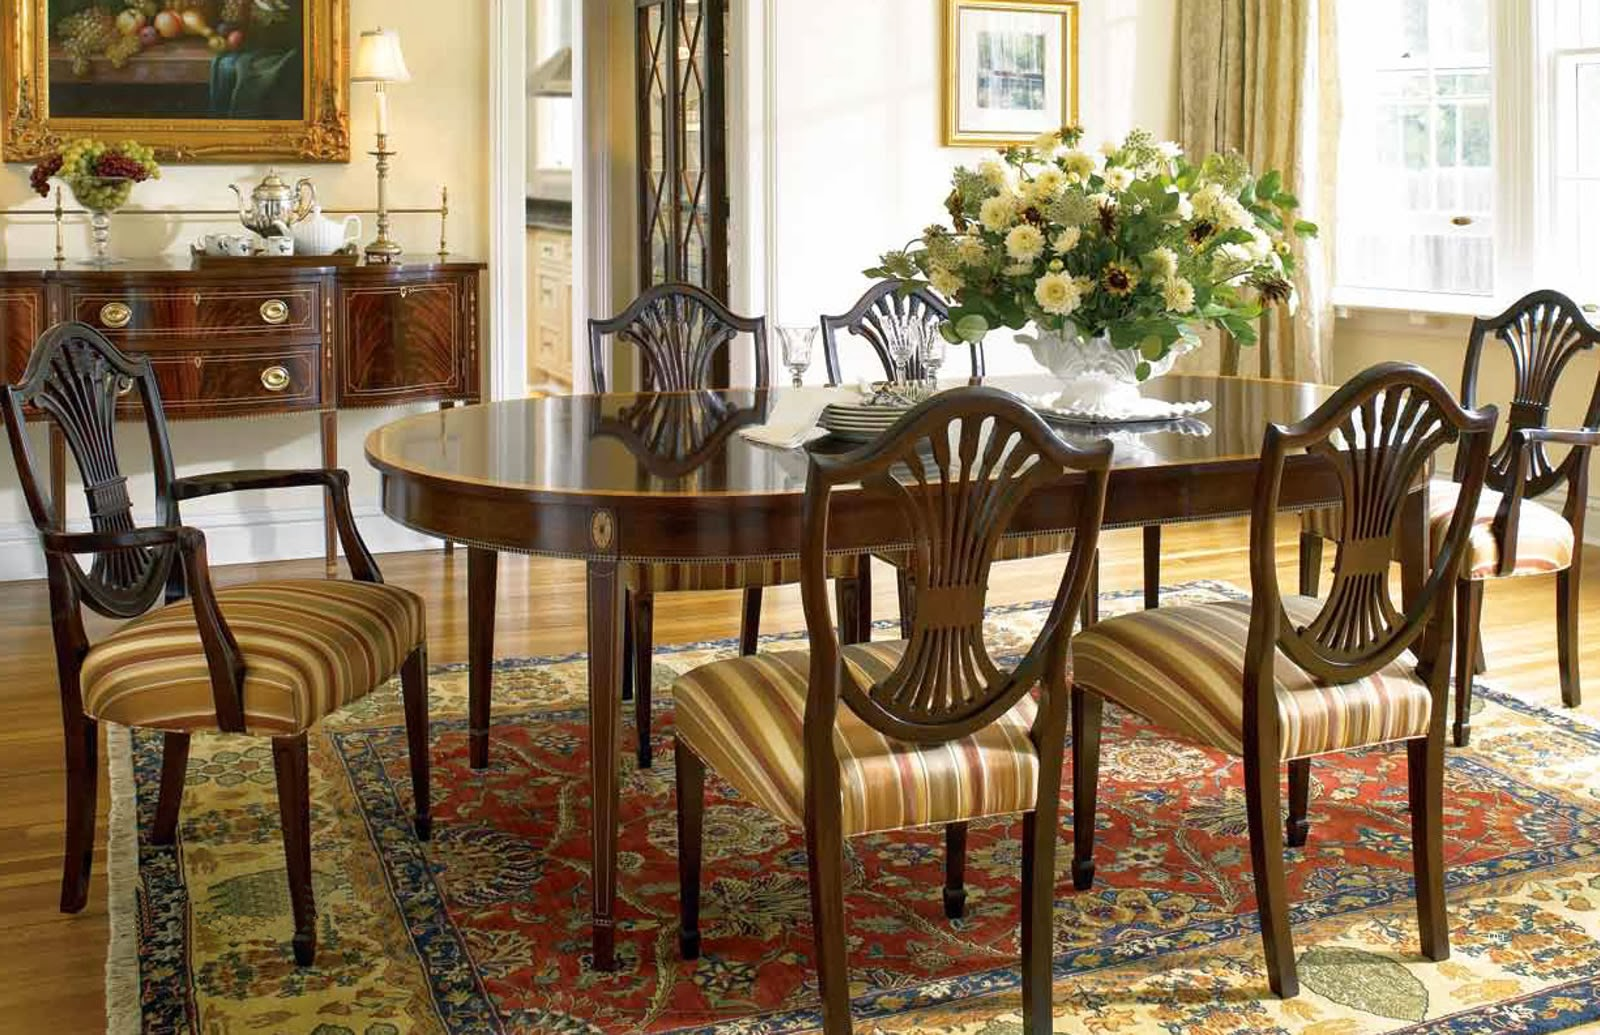 stickley dining room table | Traditions Furniture: Stickley Traditional dining in the ...